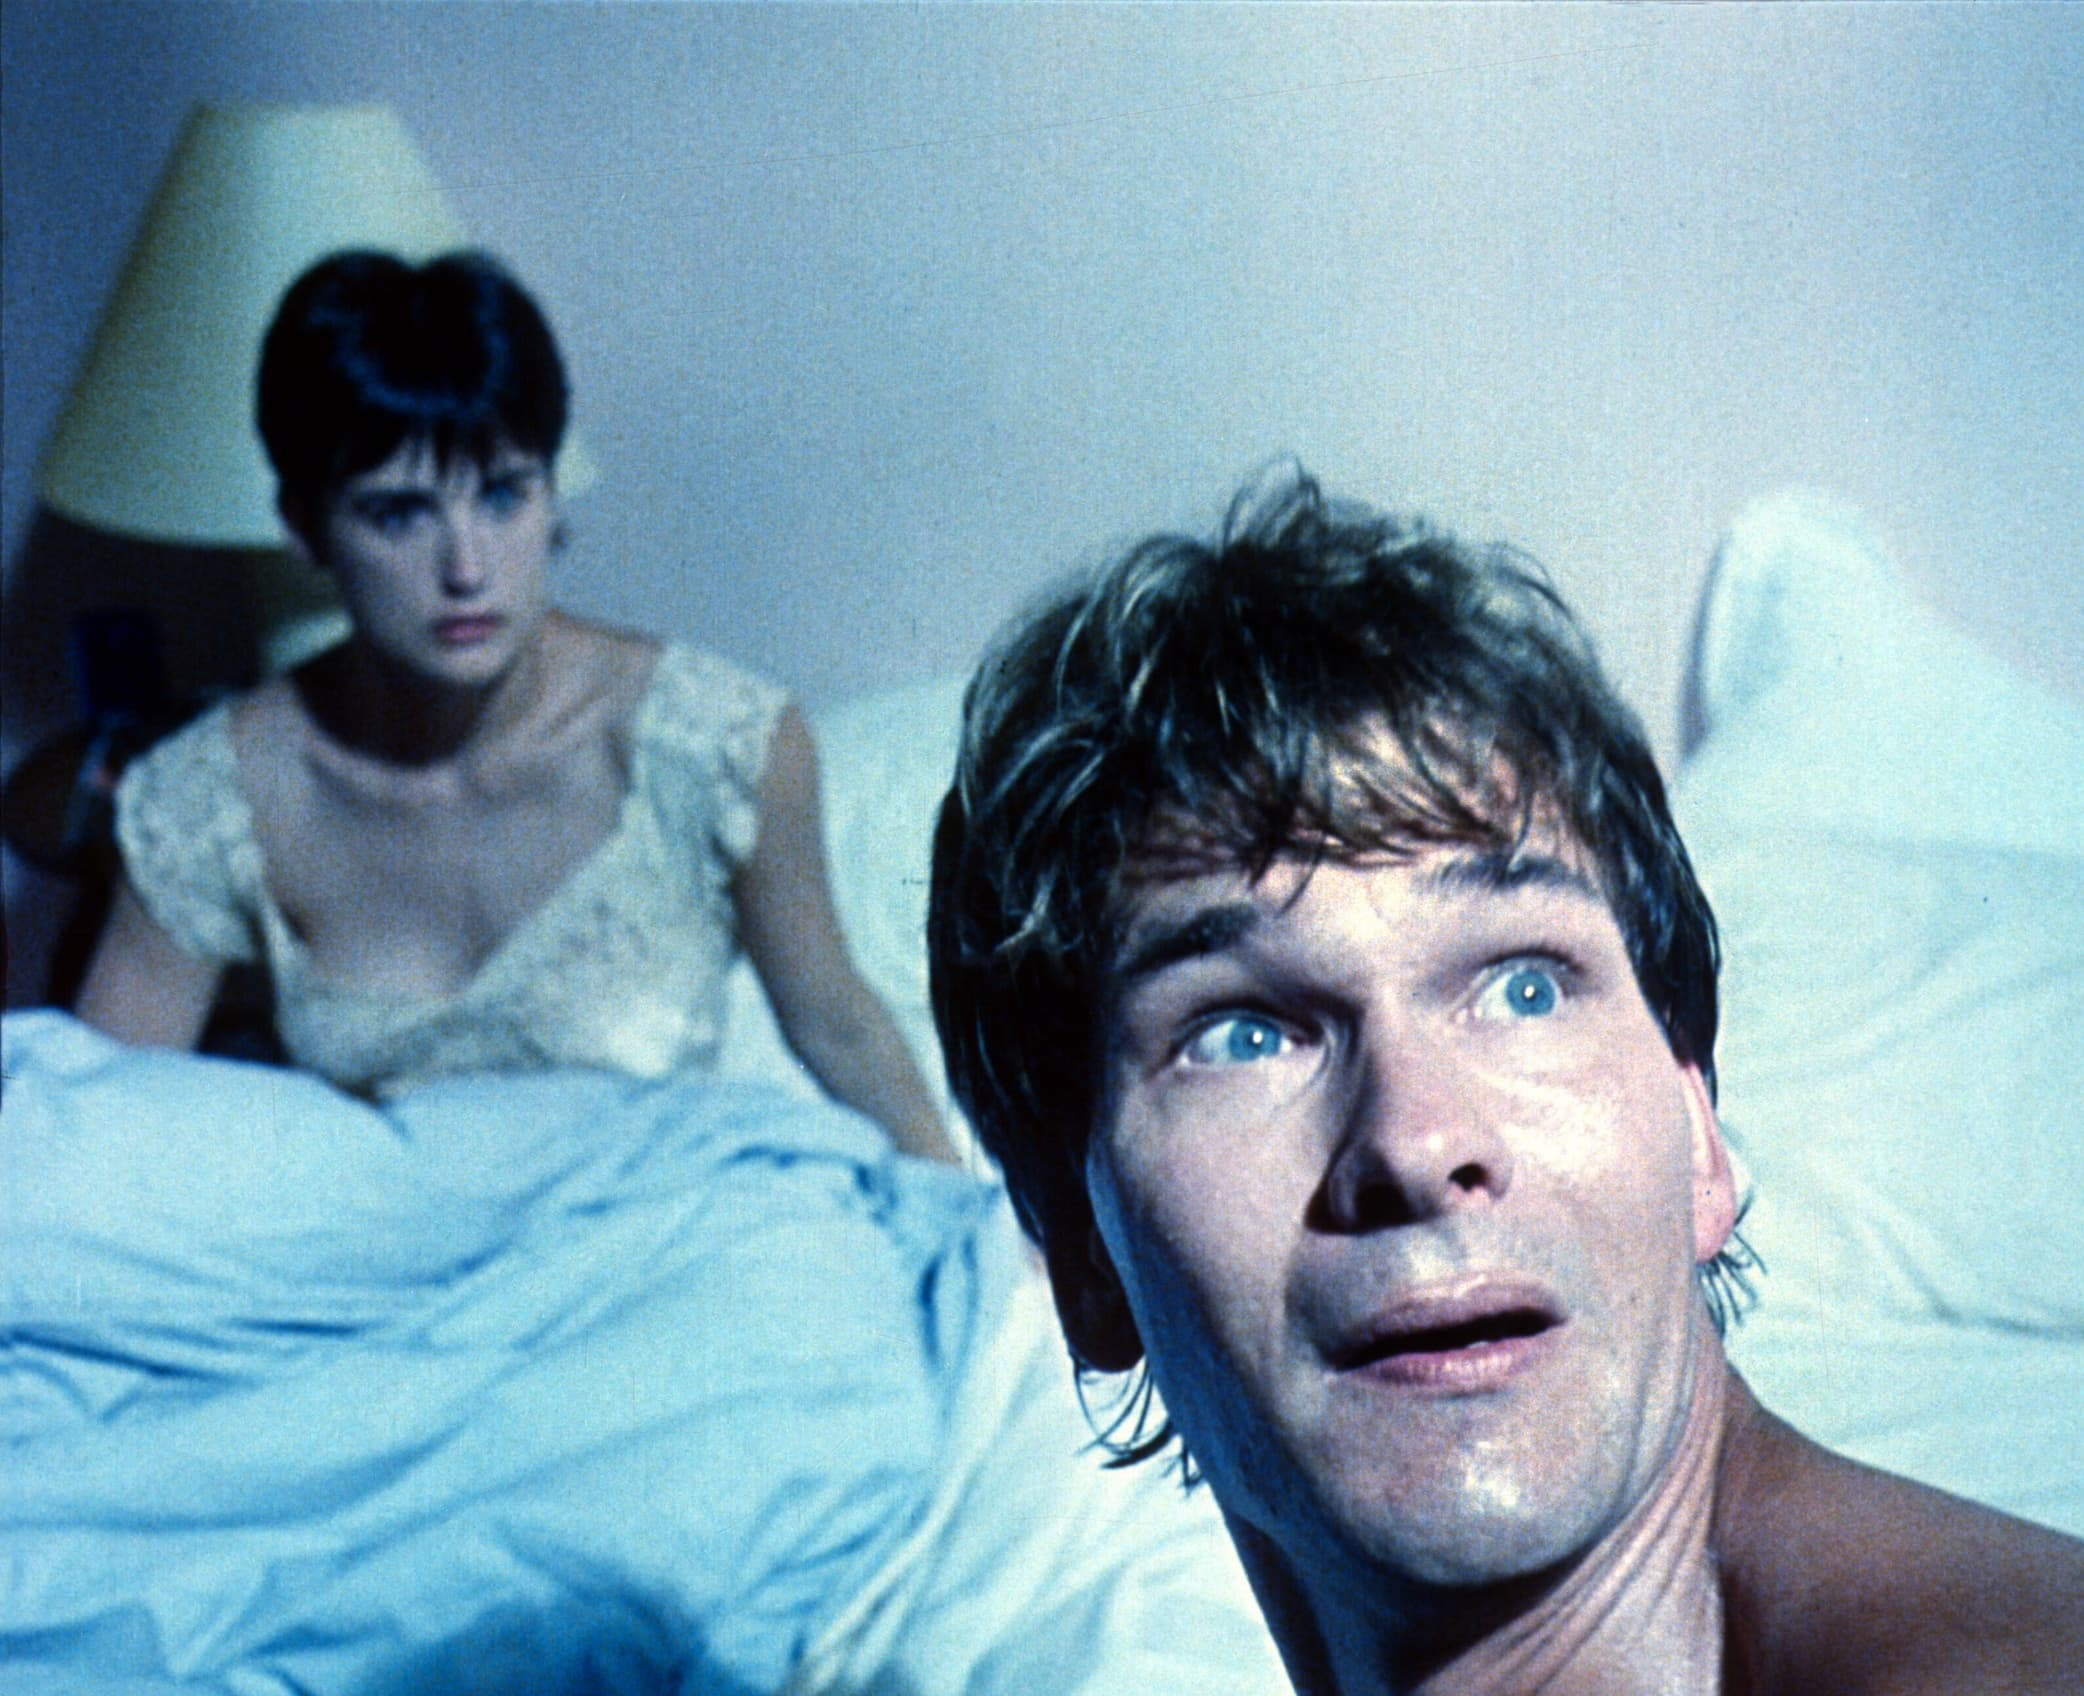 Patrick Swayze plays Sam Wheat, a murdered banker whose ghost sets out to save his girlfriend (Demi Moore as Molly Jensen) from the person who killed him, in Ghost